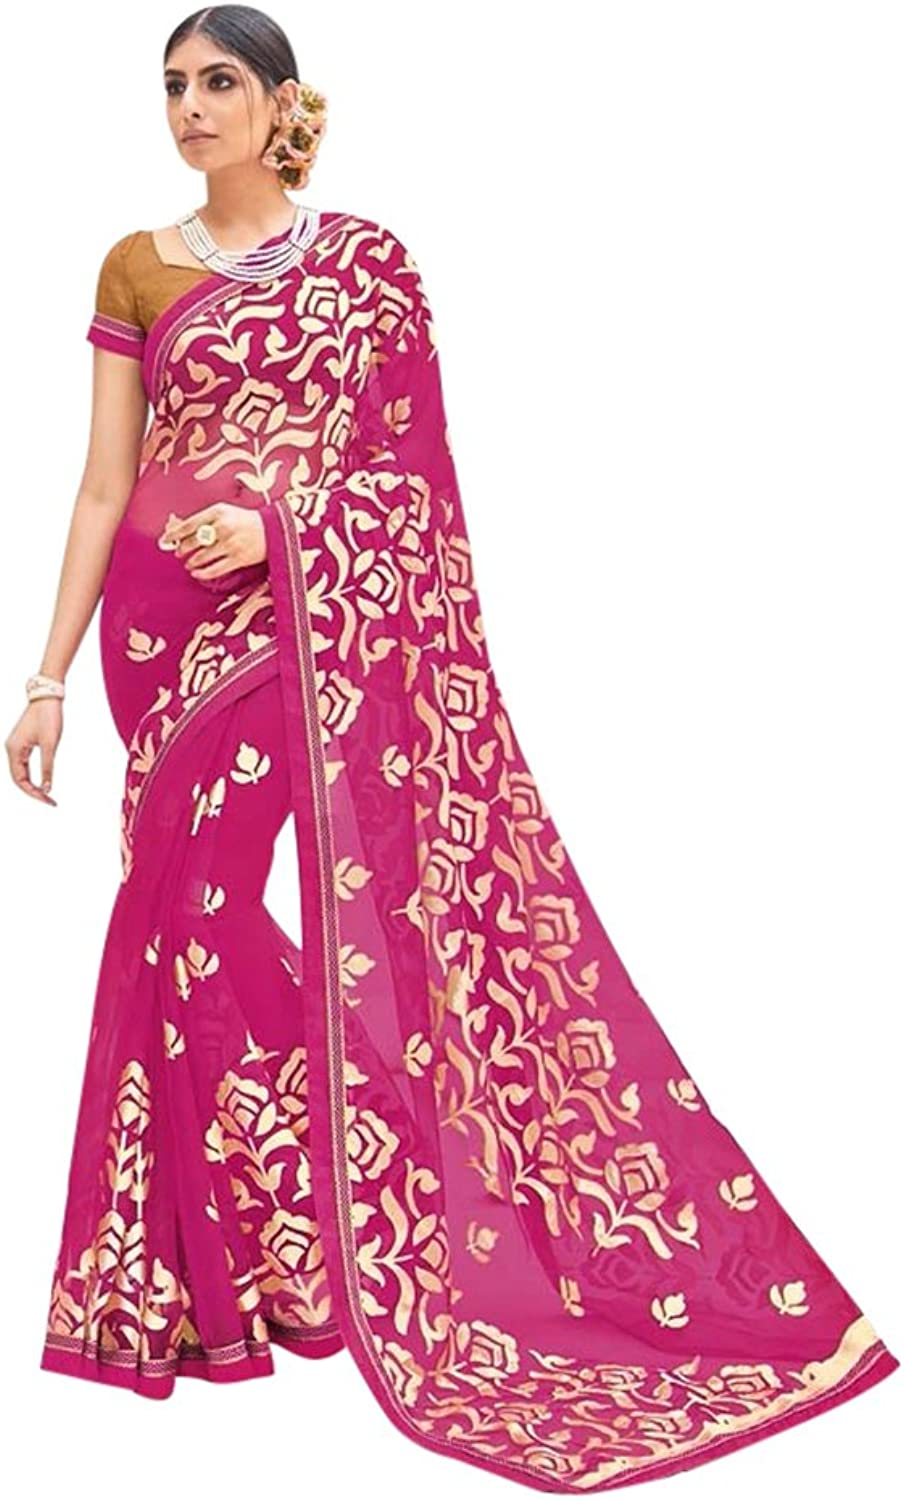 New Launch Formal Indian Saree Sari Collection Blouse Wedding Party Wear Ceremony Women Muslim eid 647 10